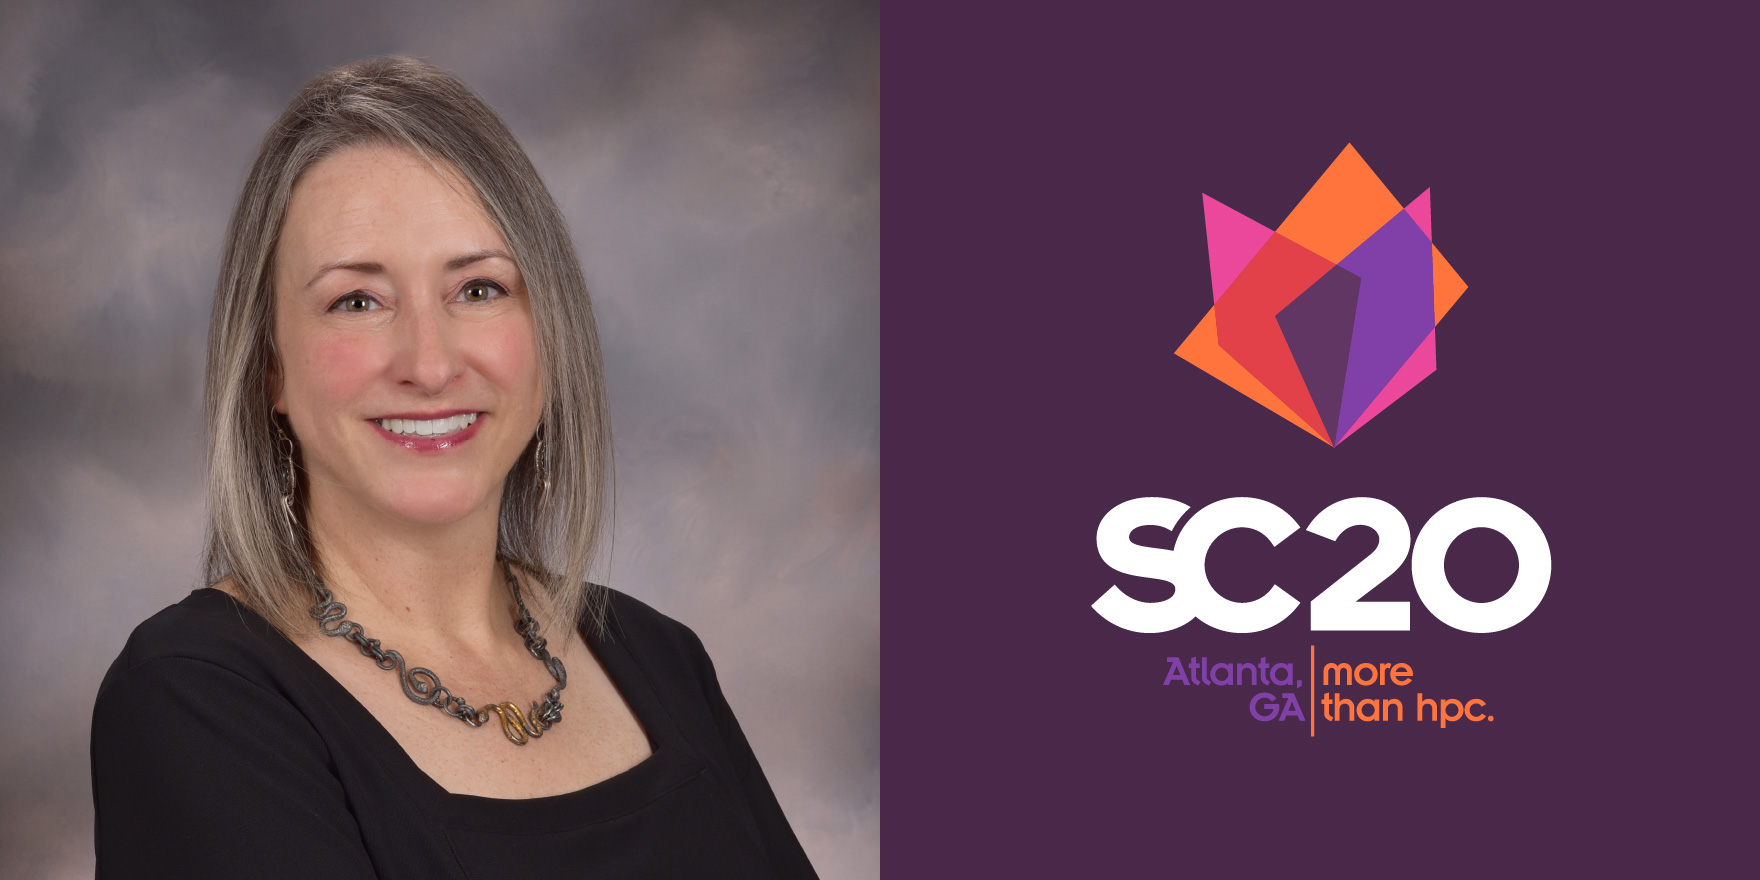 SC20 General Chair Christine Cuicci